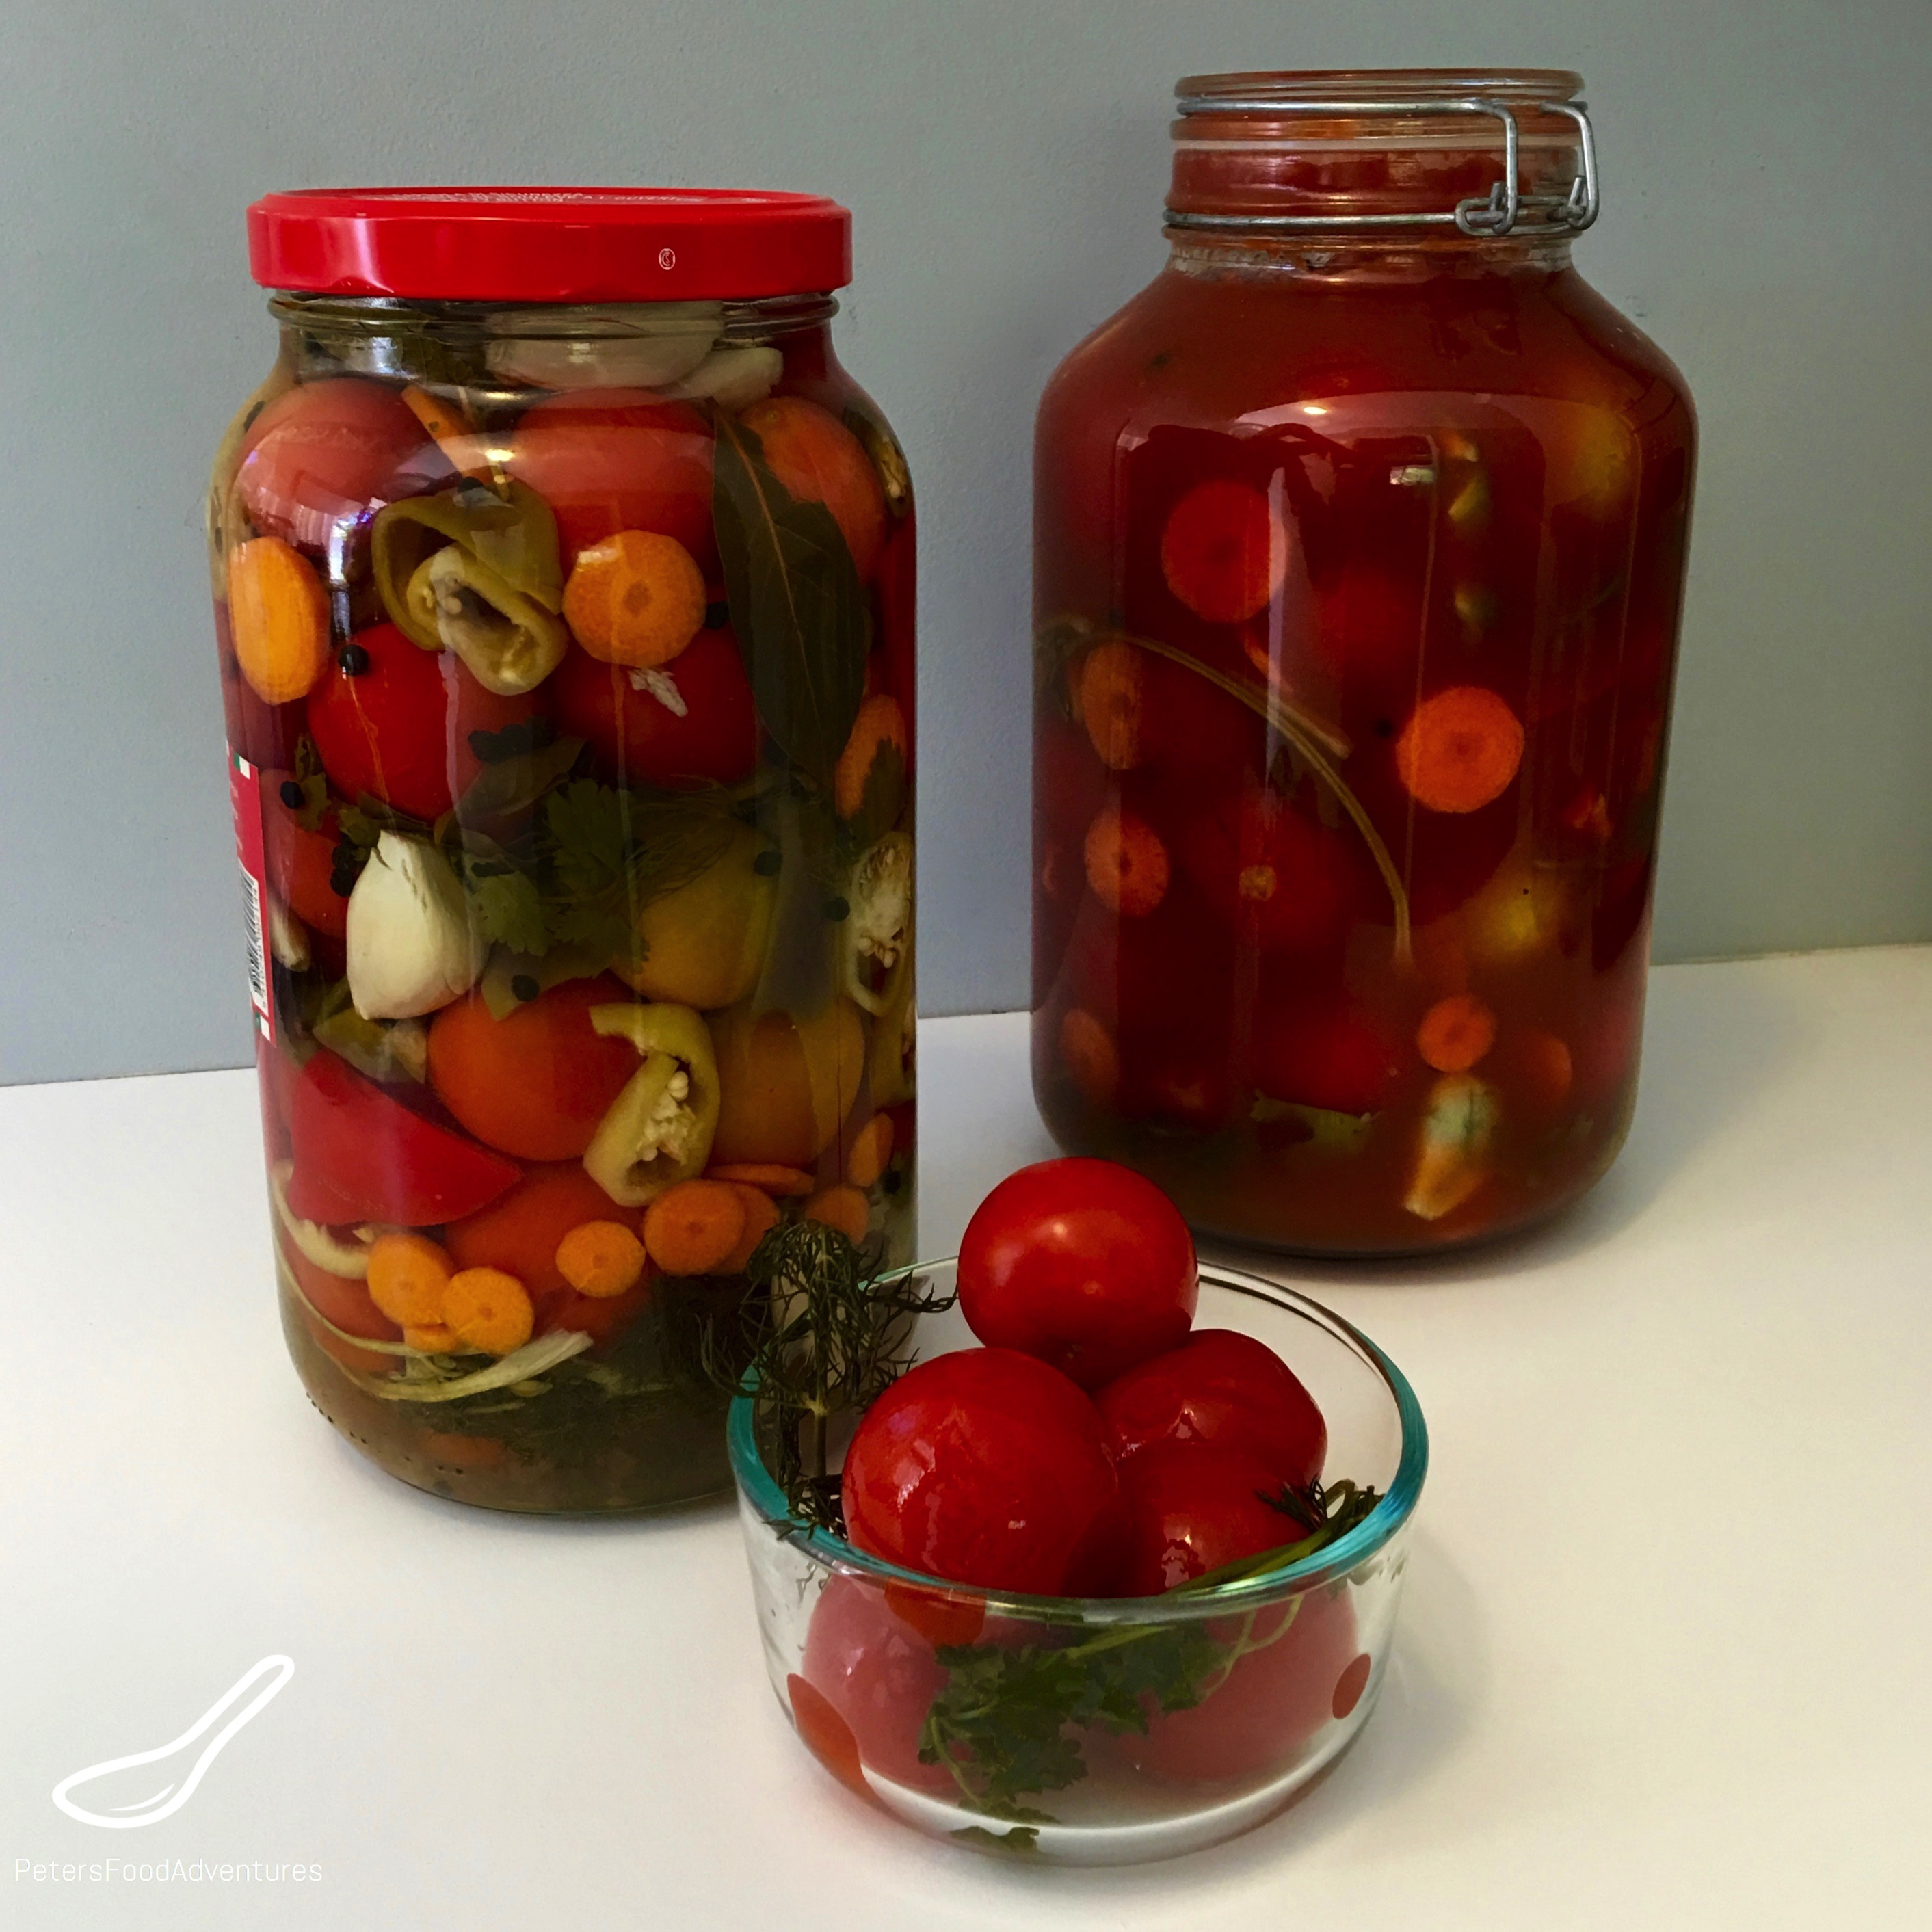 Pickled tomatoes for the winter: 7 very tasty recipes for sweet pickled tomatoes